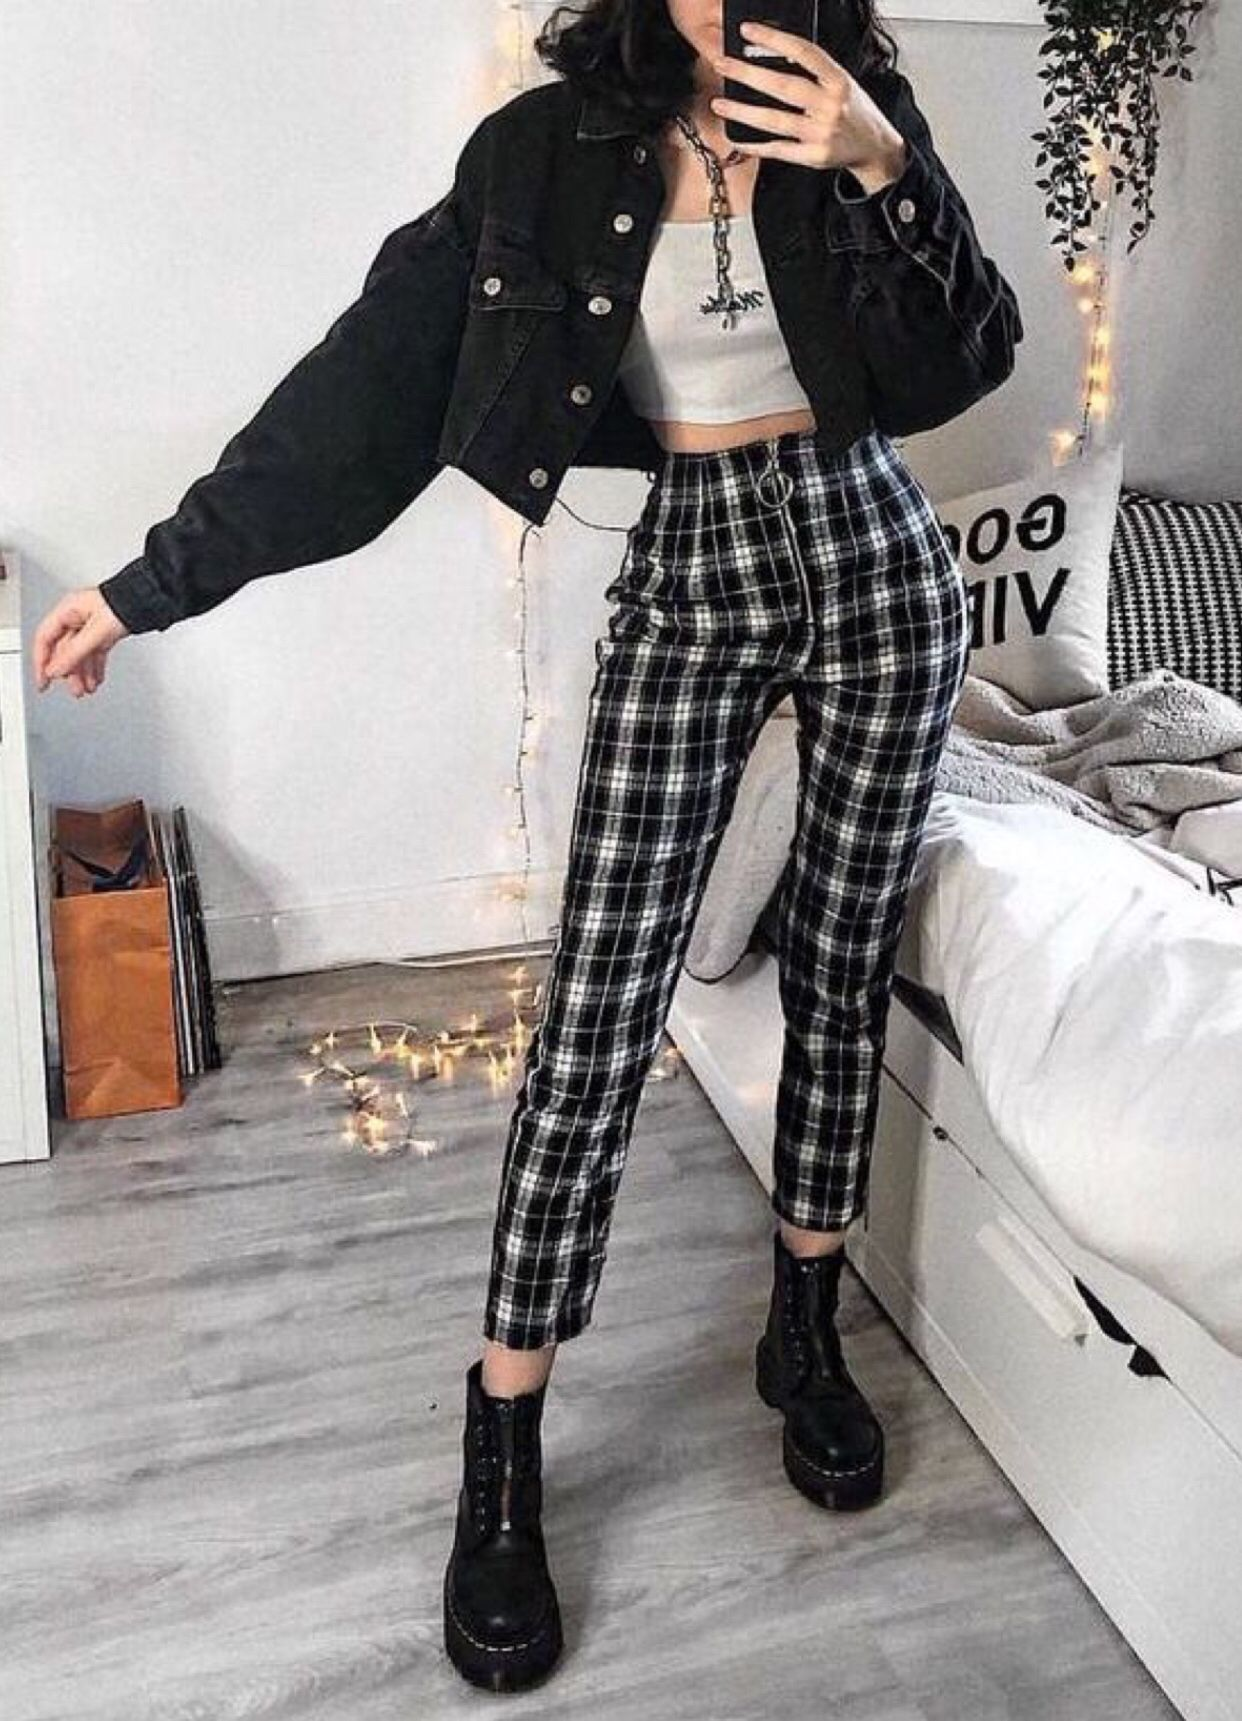 Pin By Alexandra Barcan On C L O T H E S Aesthetic Clothes Edgy Outfits Fashion